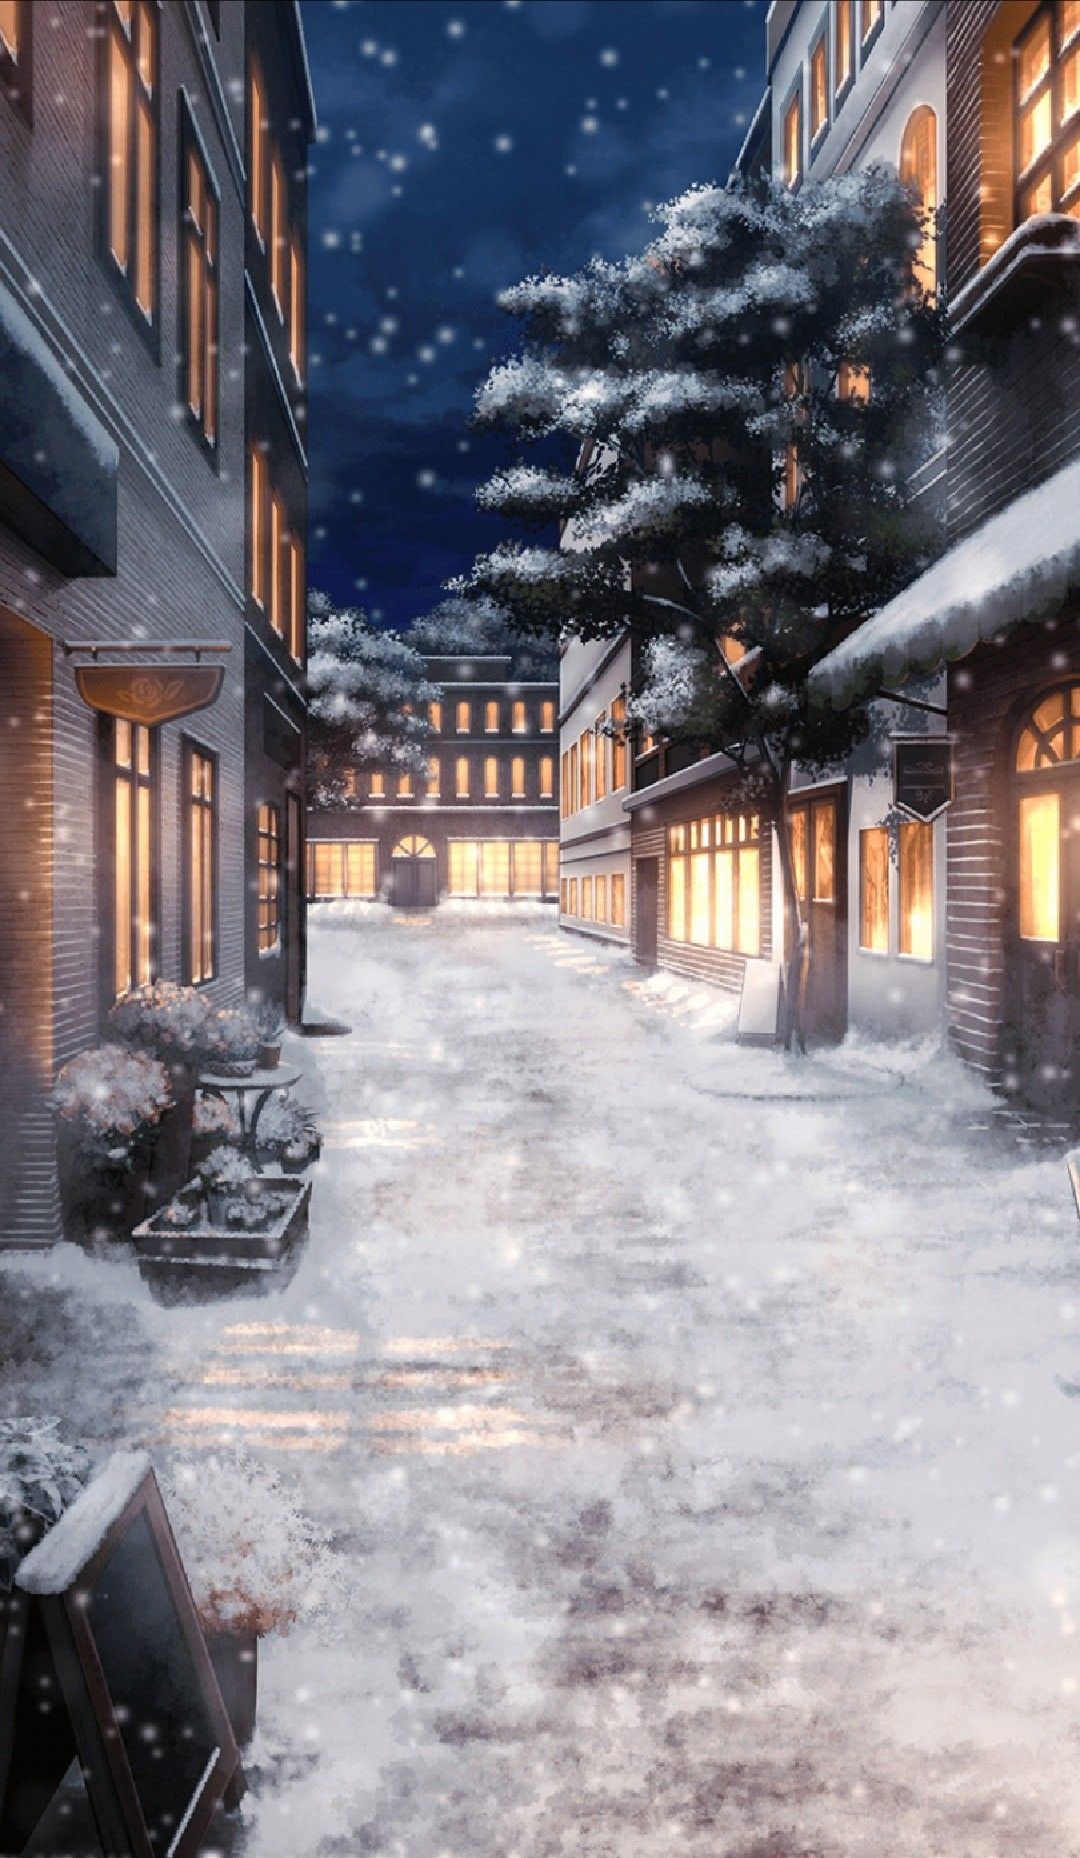 Pin by mika on 風景 anime scenery wallpaper anime scenery